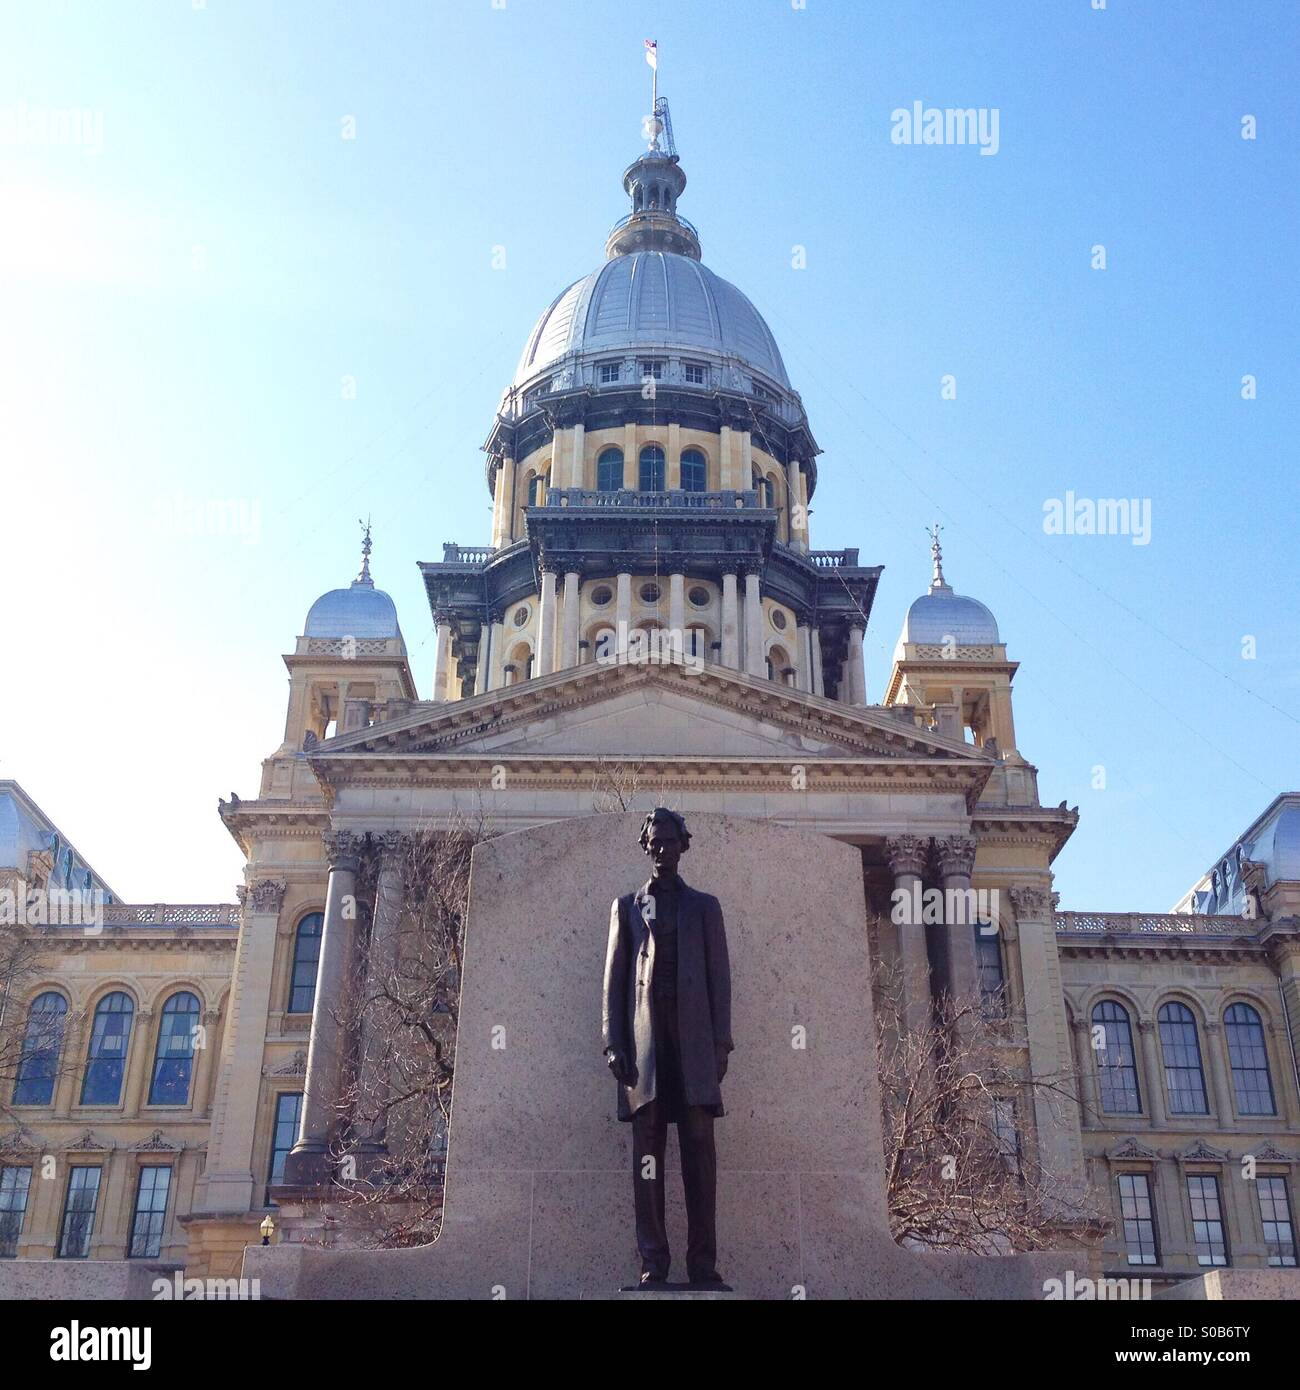 Illinois State Capitol Building in Springfield, Illinois - Stock Image